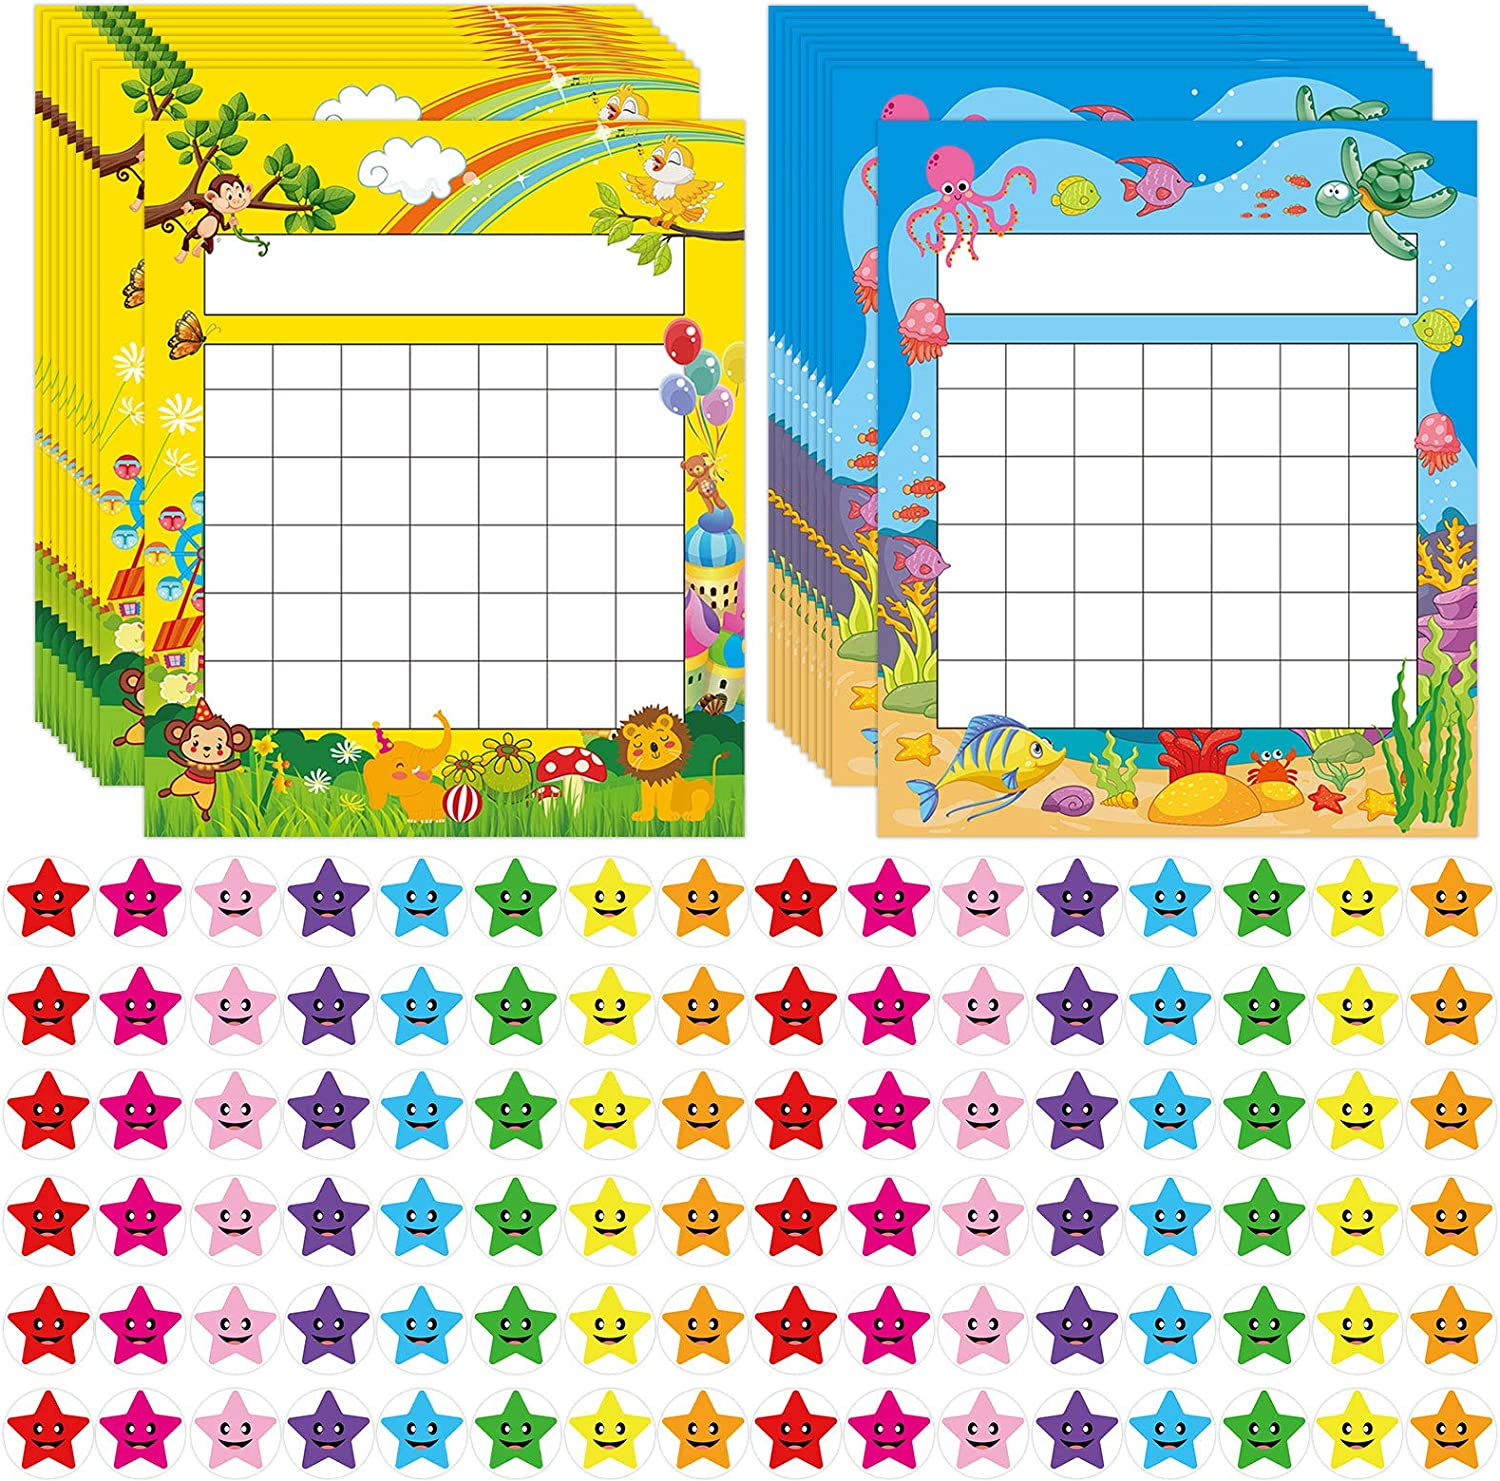 Pack of 66 Incentive Chart Max 43% OFF with Star Reward Award-winning store for 2080 Ki Stickers